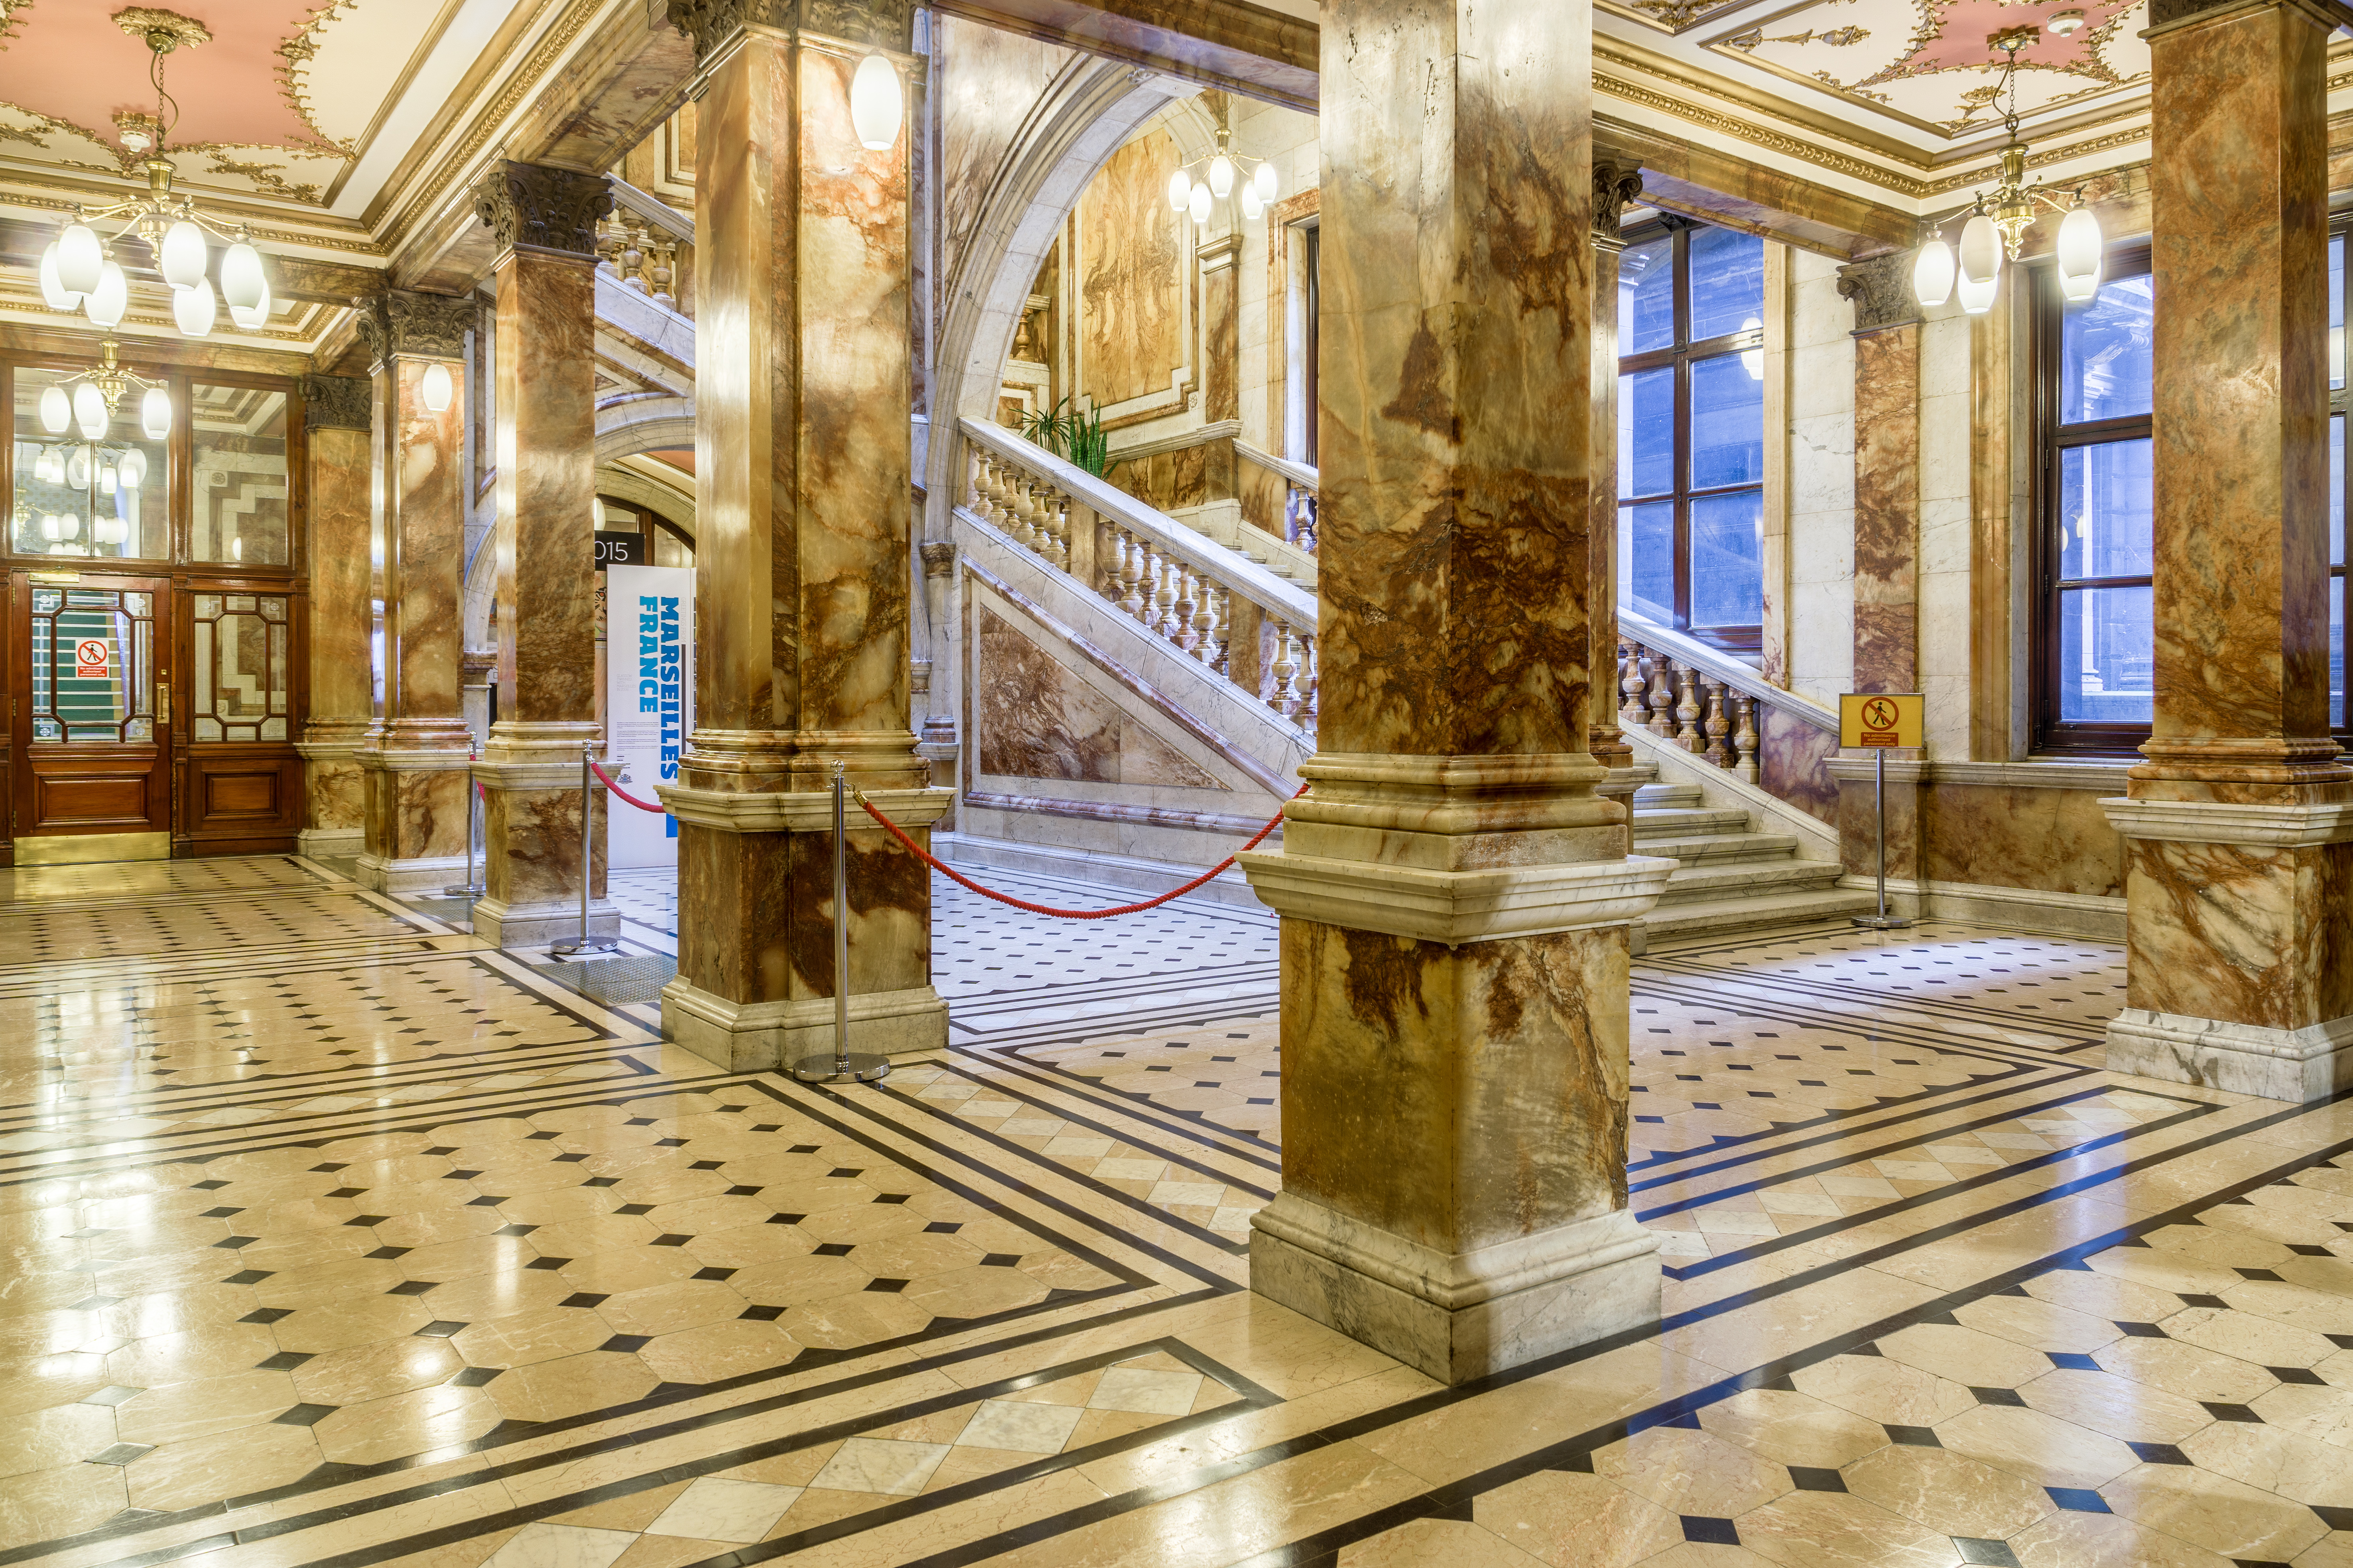 File:Glasgow City Chambers   Carrara Marble Staircase   4